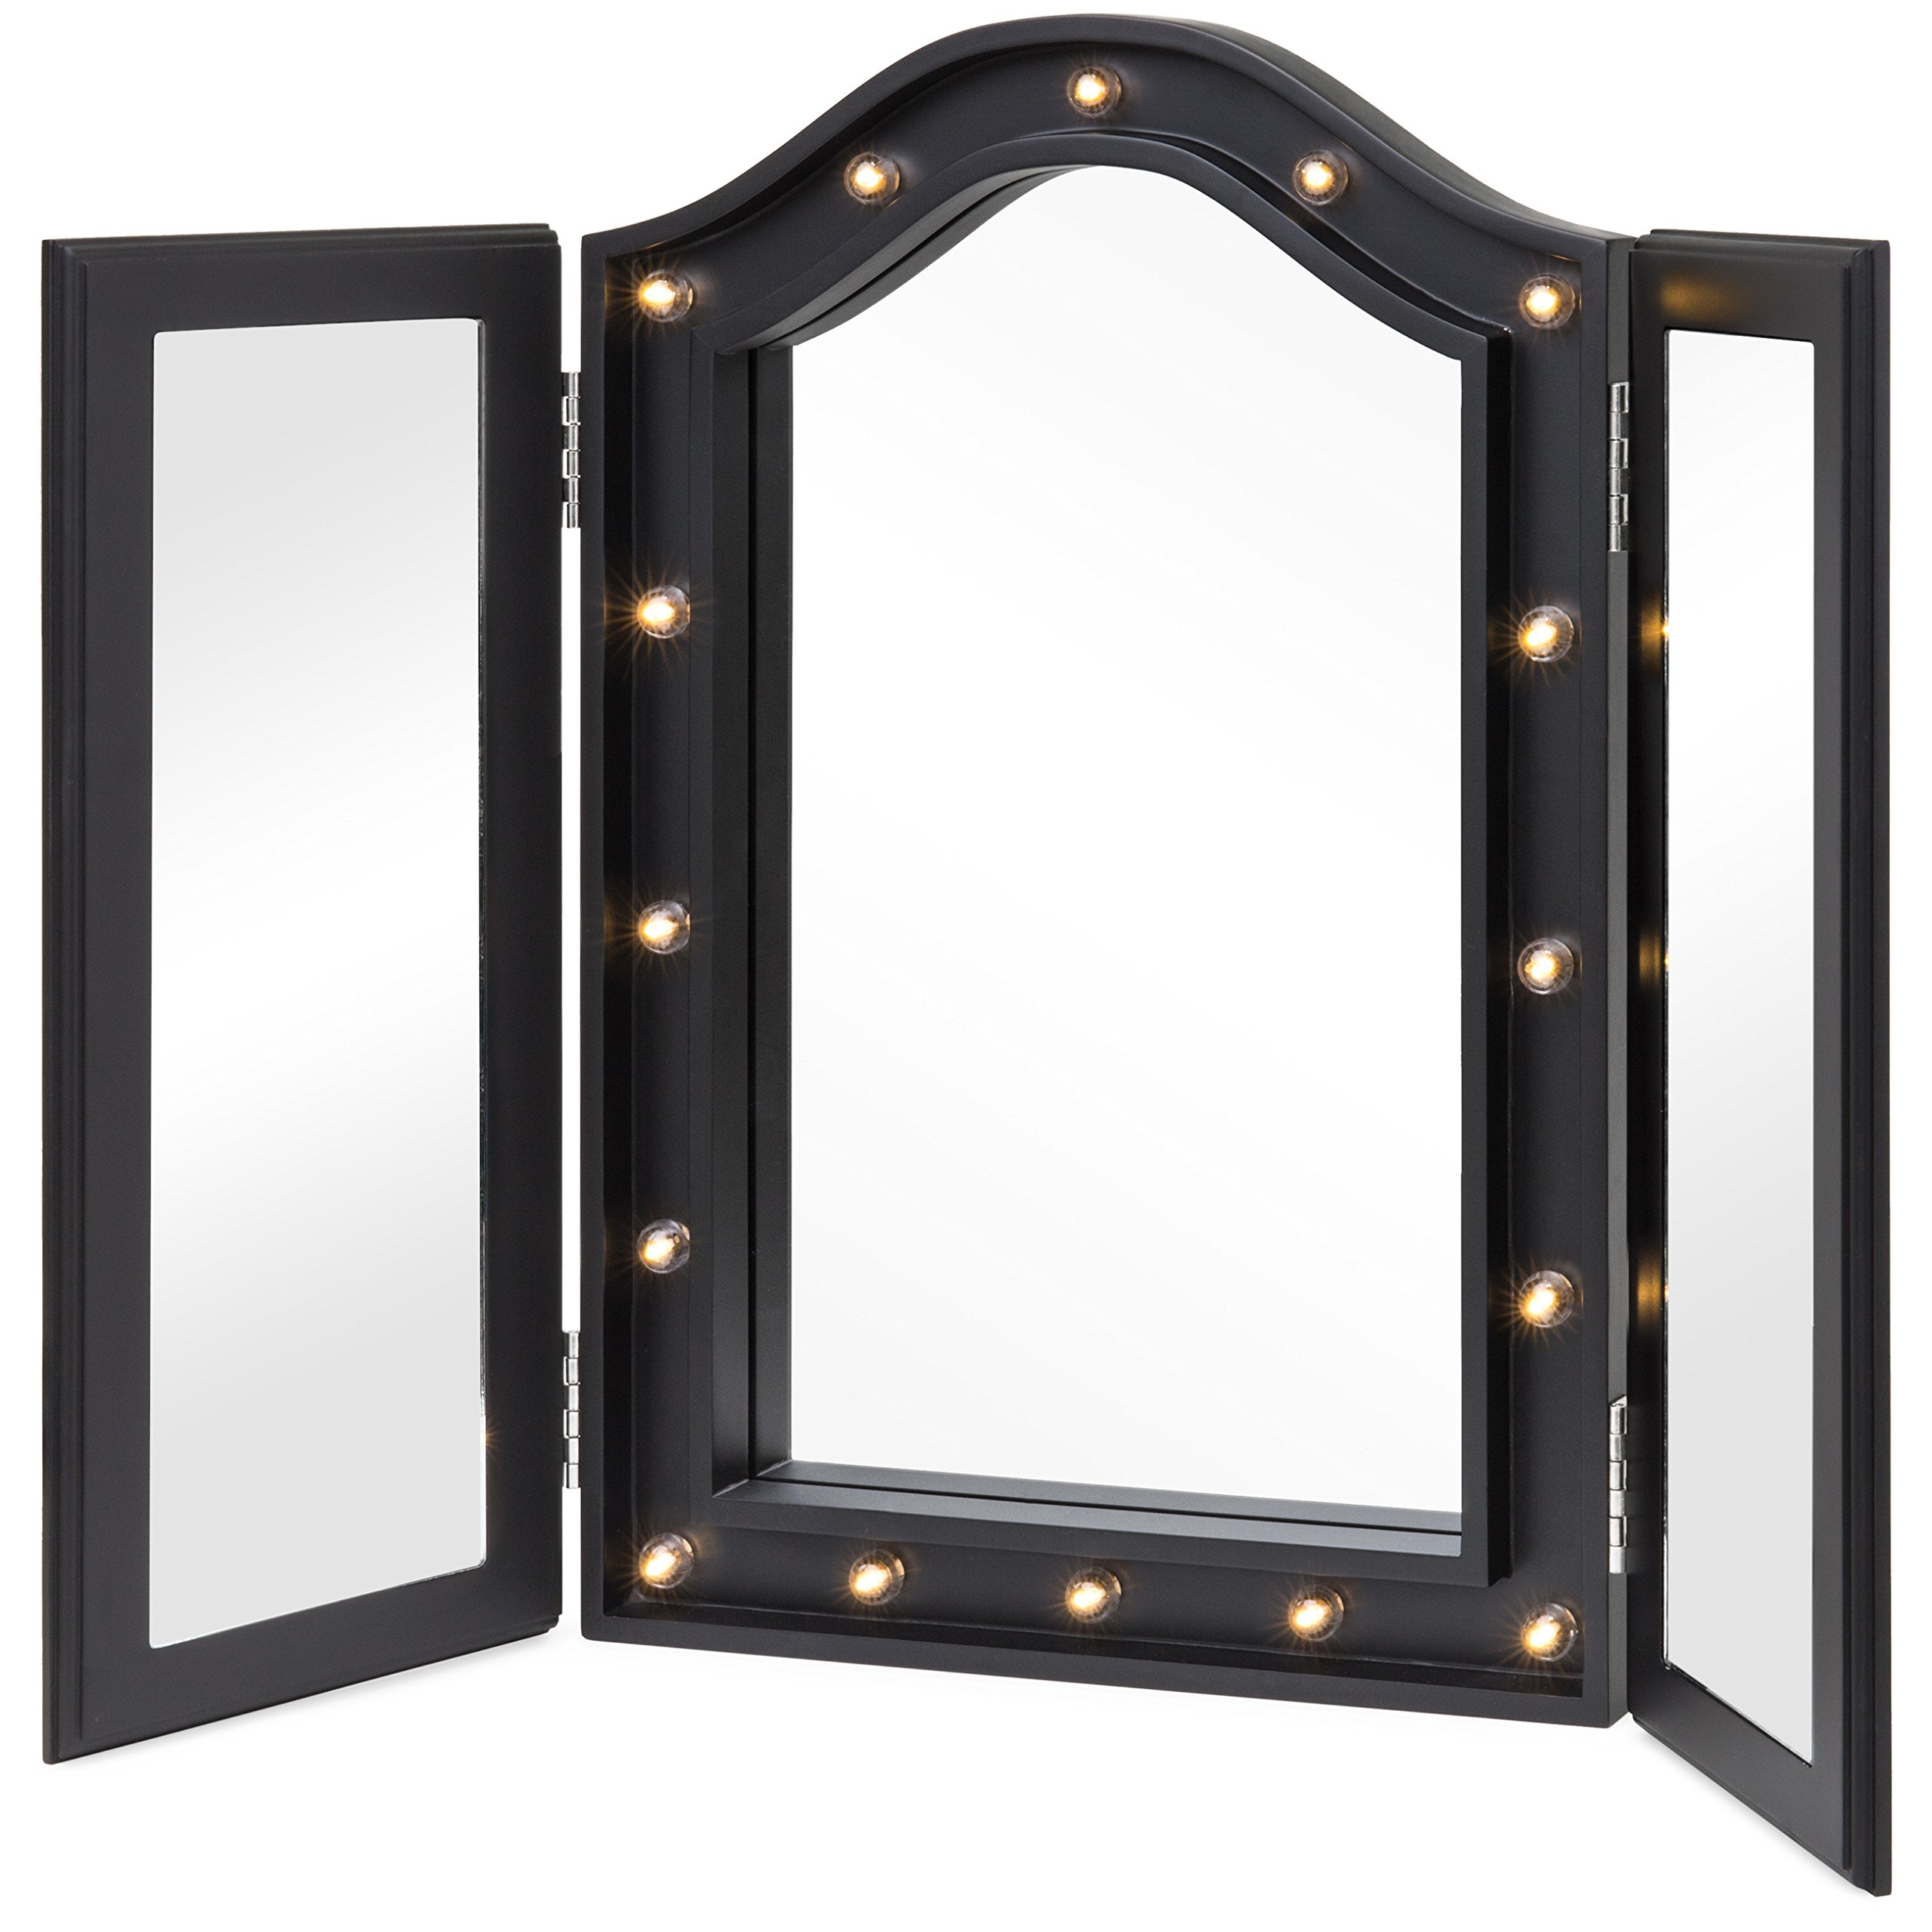 Best Choice Products Lighted Tabletop Tri-Fold Vanity Mirror Decor Accent w/ 16 LED Lights, Velvet-Lined Back - Black